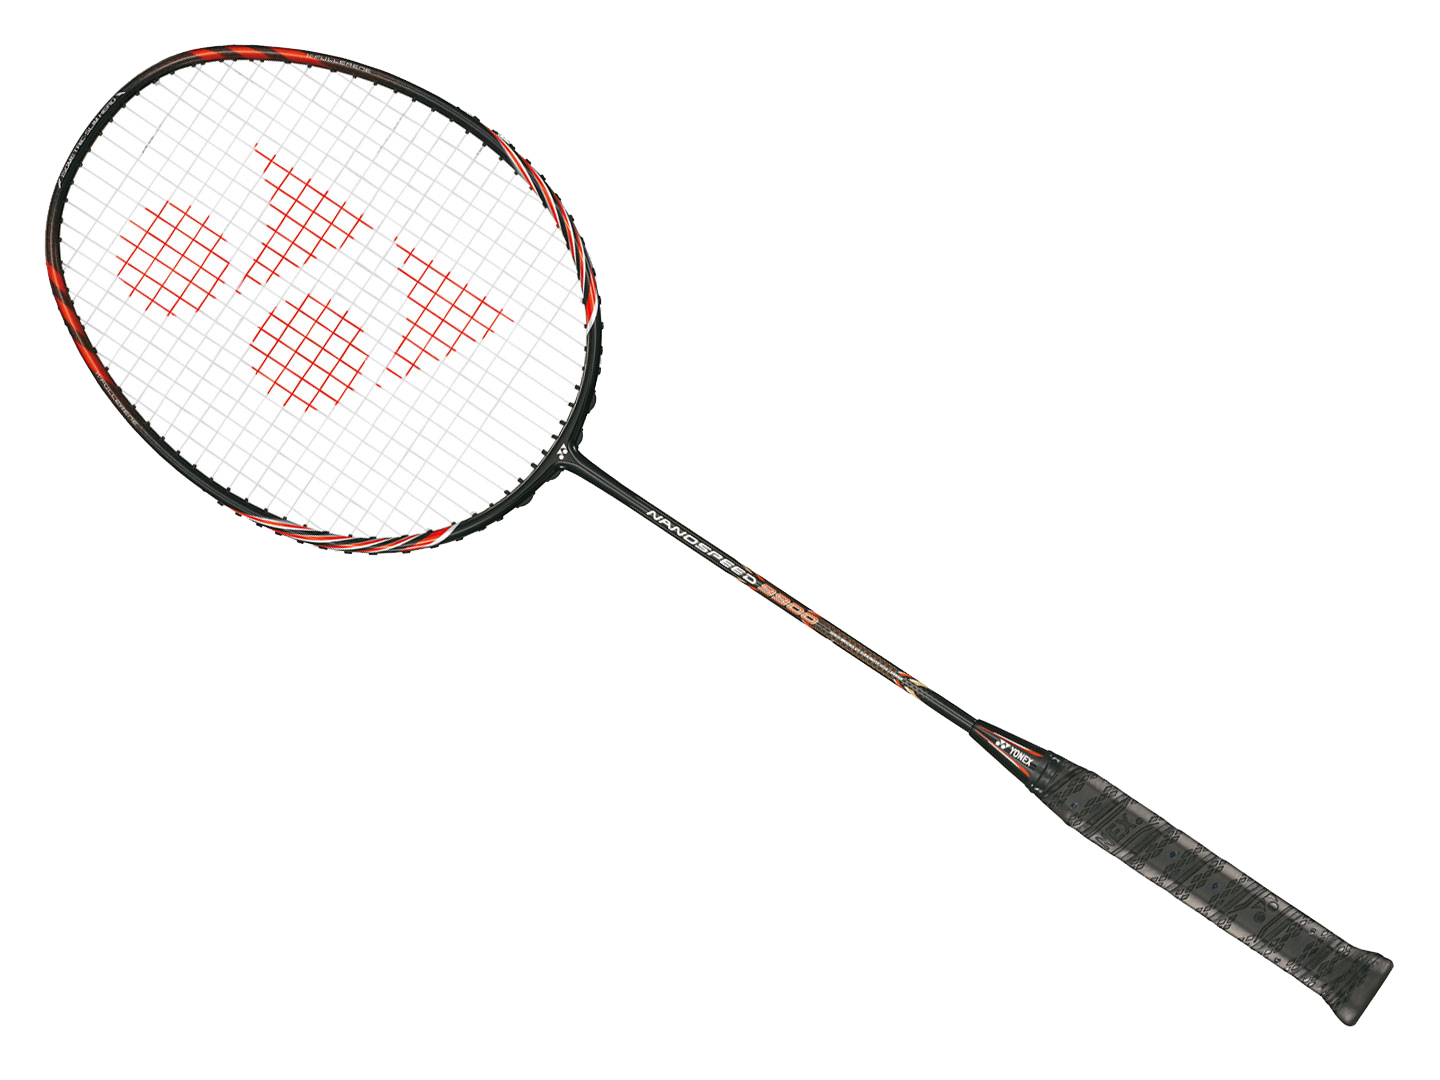 Badminton Png Picture PNG Image